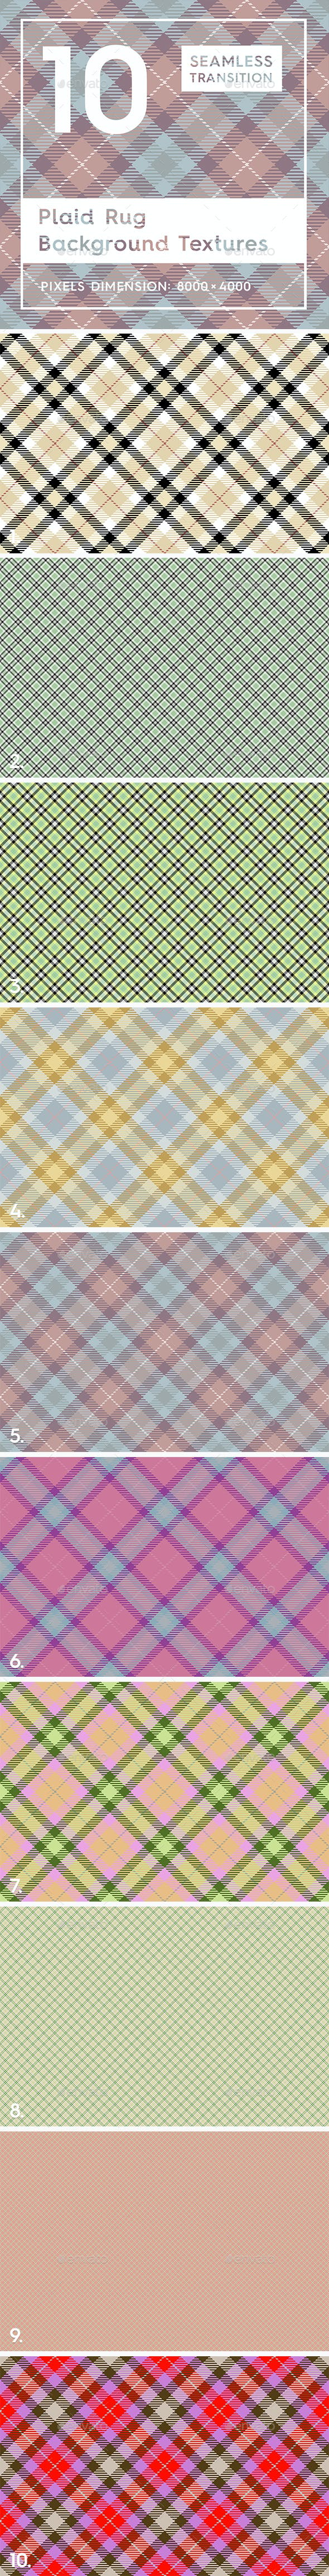 10 Plaid Rug Background Textures - 3DOcean Item for Sale